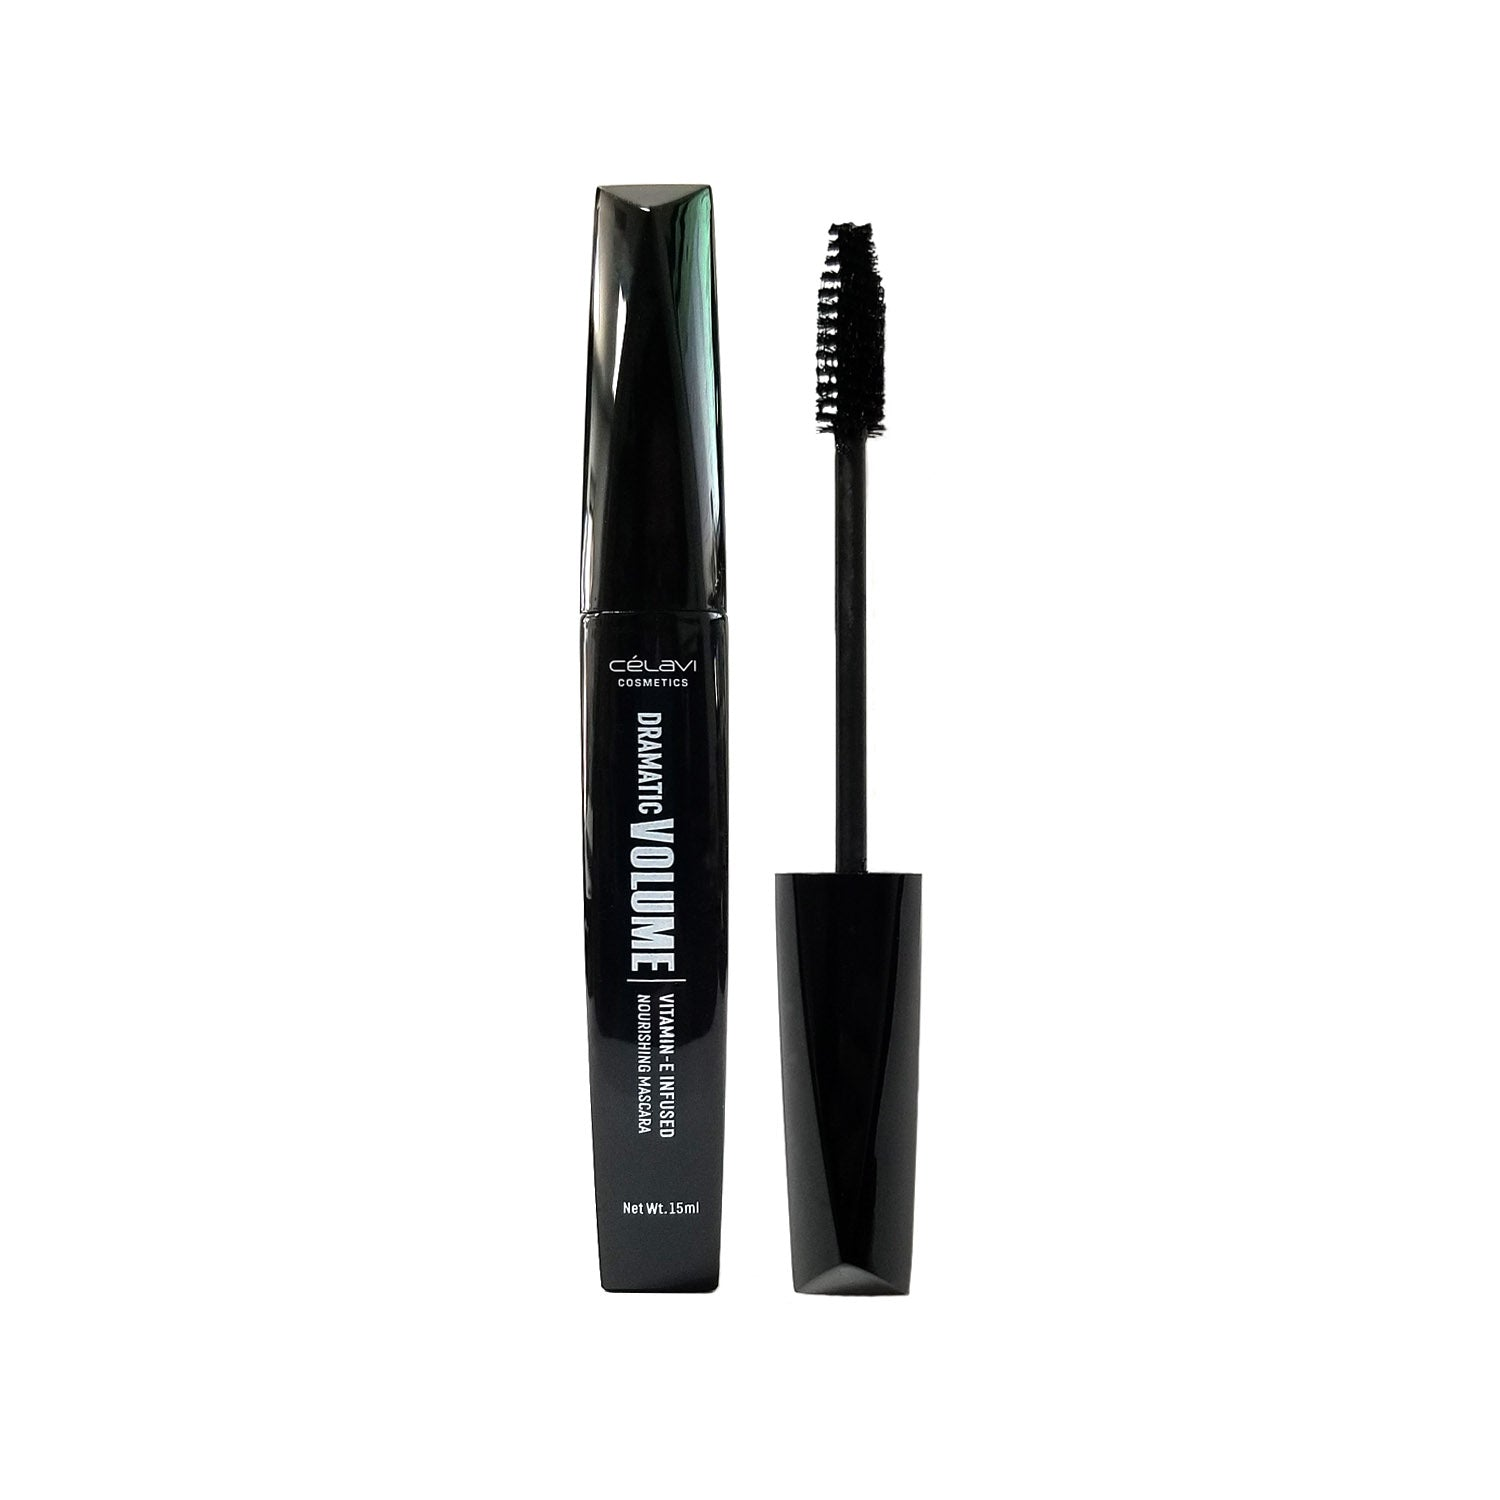 DRAMATIC VOLUME VITAMIN-E INFUSED NOURISHING MASCARA